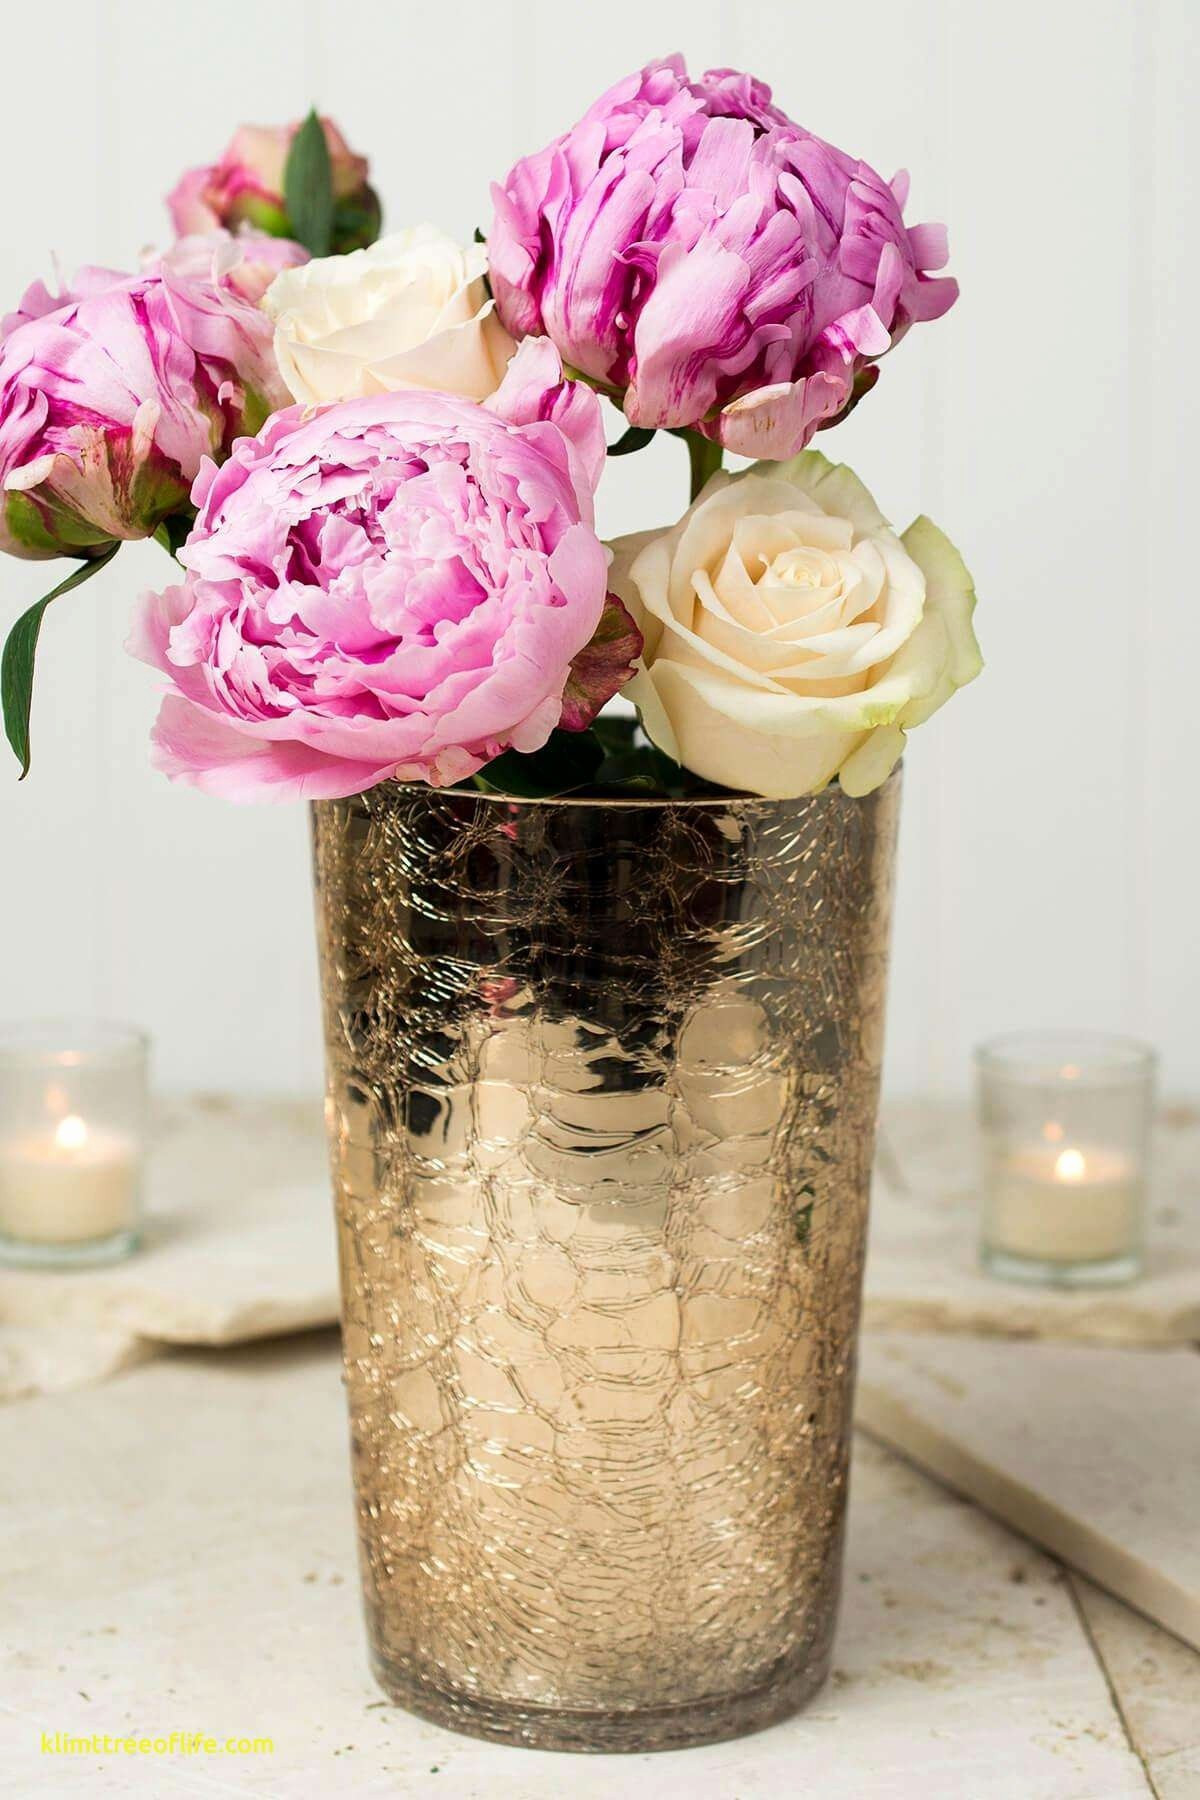 fake pink peonies in vase of flower wall decor luxe h vases wall hanging flower vase newspaper i with flower wall decor beau flower decor wall luxury il fullxfull h vases hanging wall 2 wine